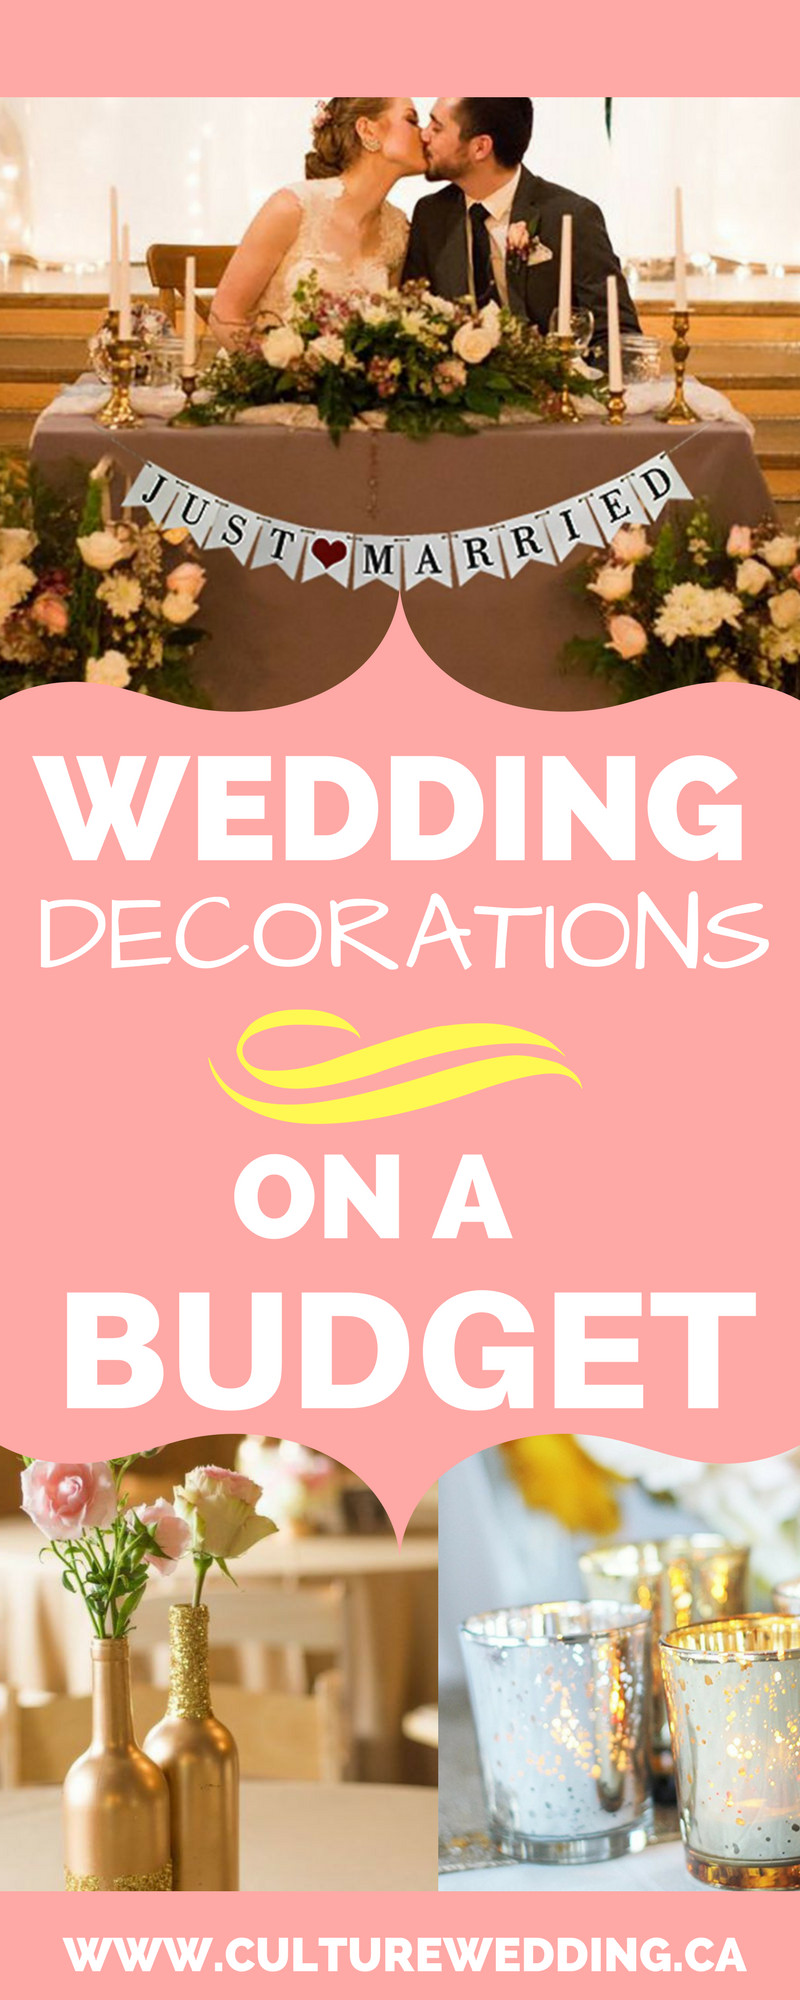 Best ideas about DIY Wedding Ideas On A Budget . Save or Pin How to Wedding Decorations on a Bud Get them now Now.